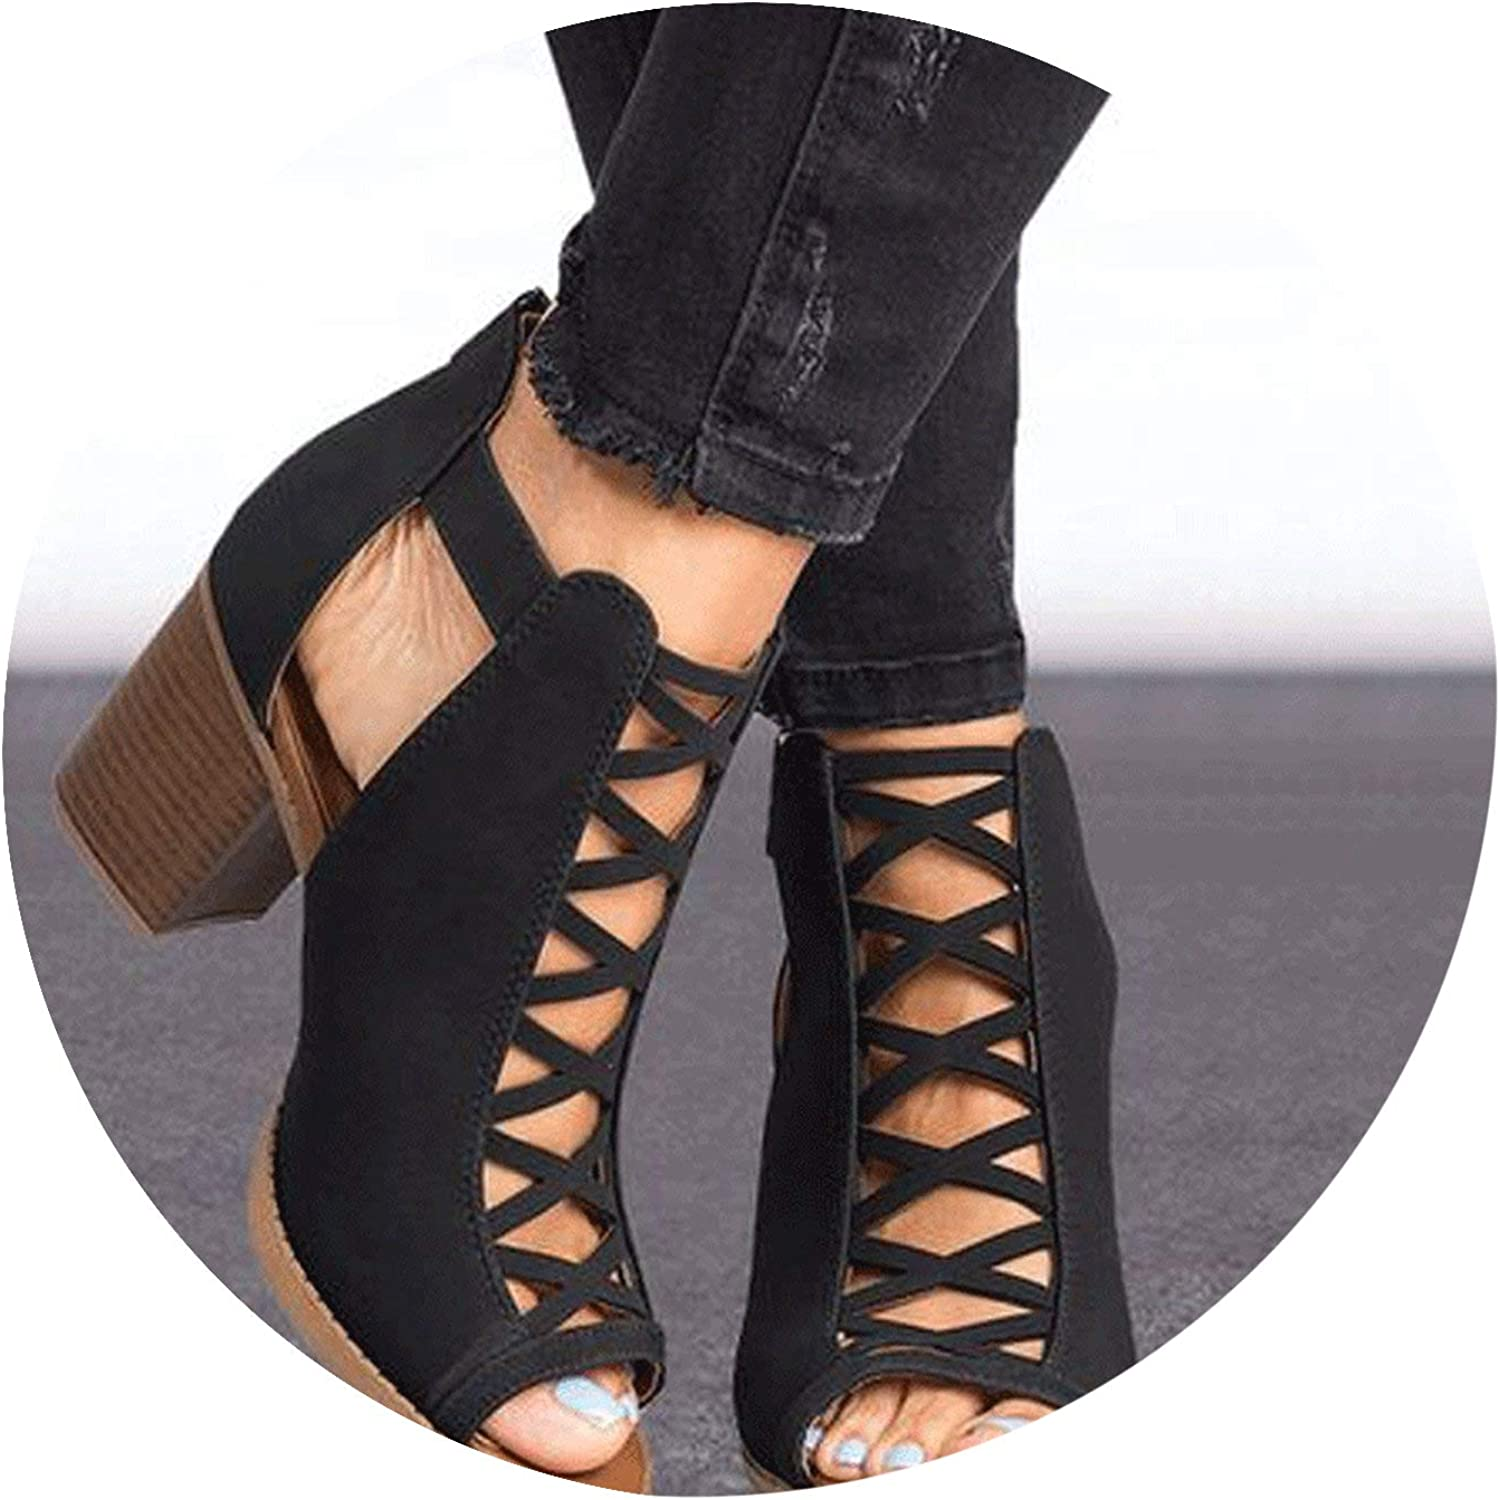 Women Sandals Summer Hot Fish Mouth Exposed Toe High-Heeled Sandals Romanesque shoes